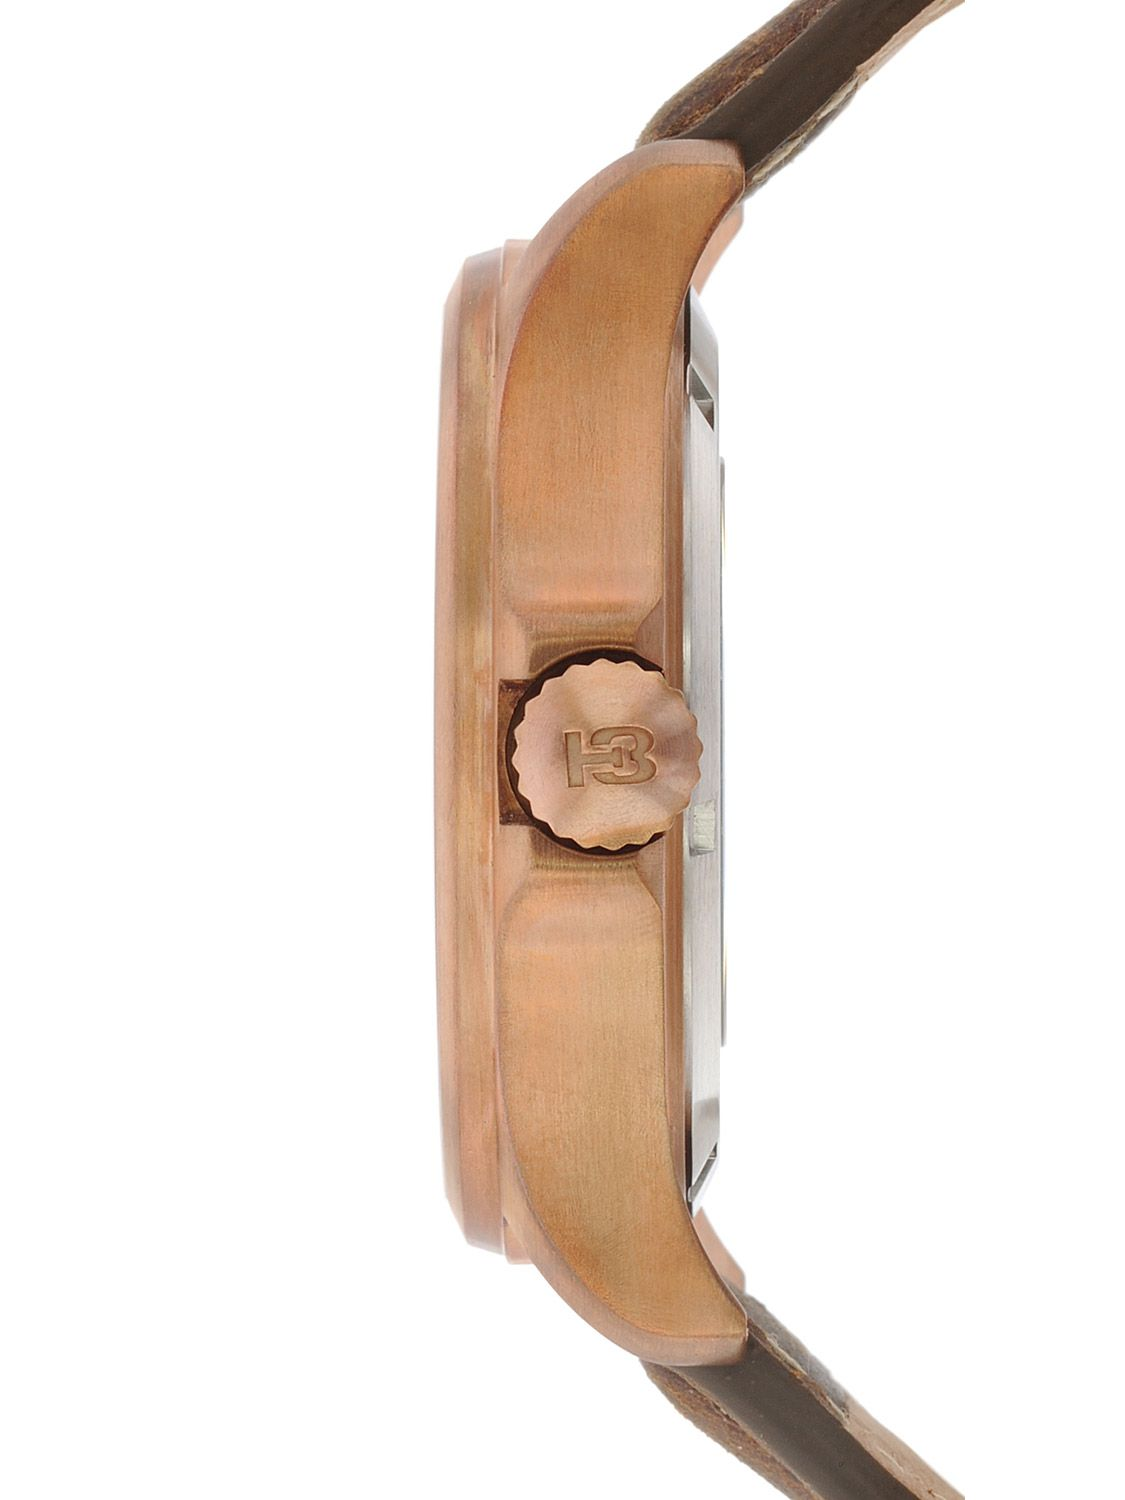 ... traser H3 108073 Automatic Men´s Watch P67 Officer Pro Brown Image 2 ... 1957e2076a2